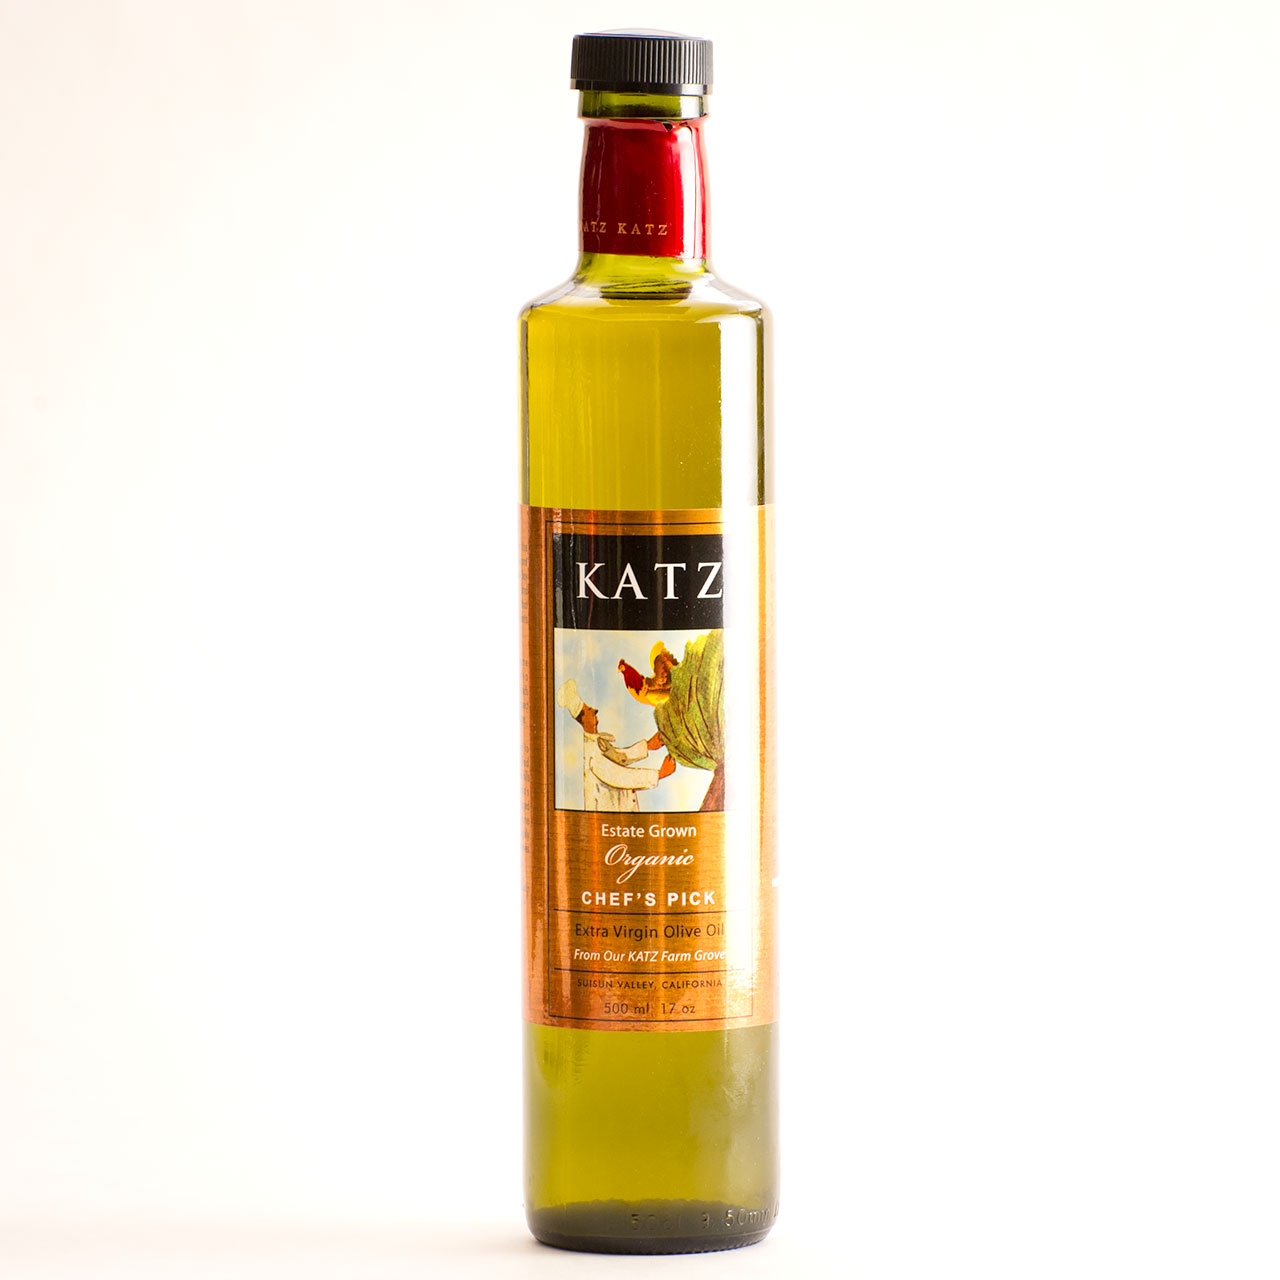 Chef's Pick Napa Valley Organic Olive Oil - Katz